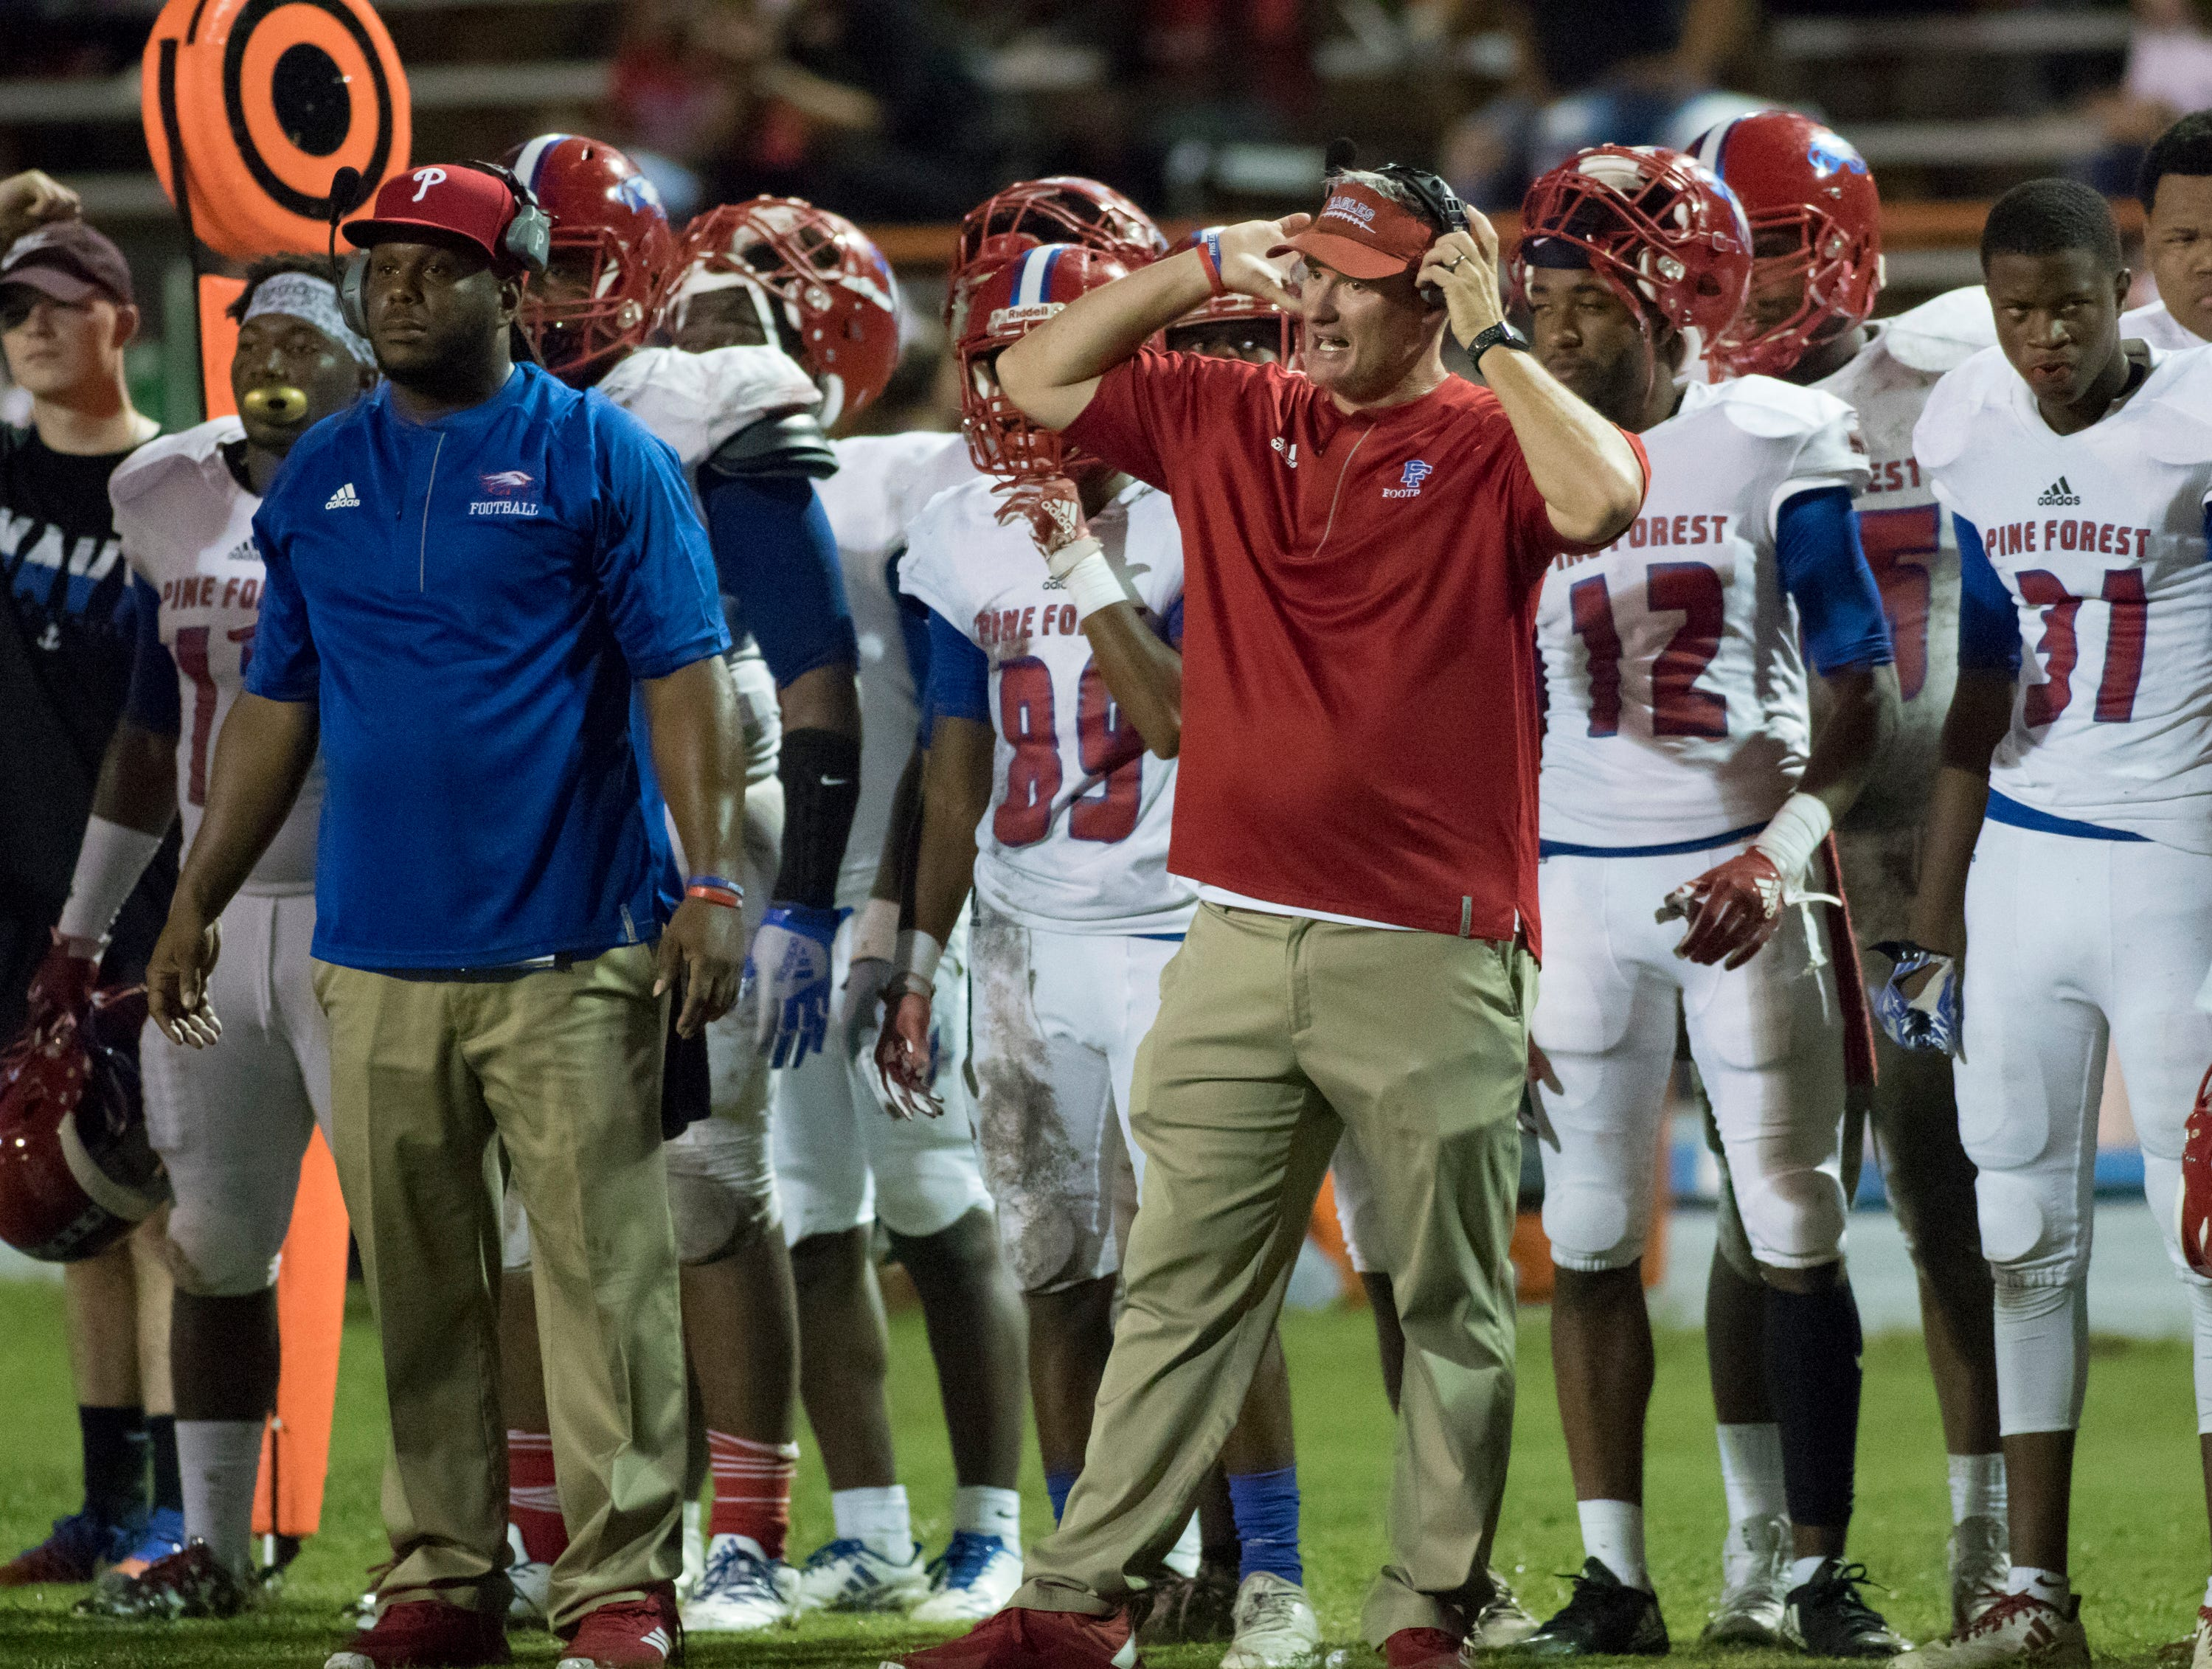 Eagles head coach Jason McDonald (in red shirt) communicates with his coaches during the Pine Forest vs Escambia football game at Escambia High School in Pensacola on Friday, September 28, 2018.